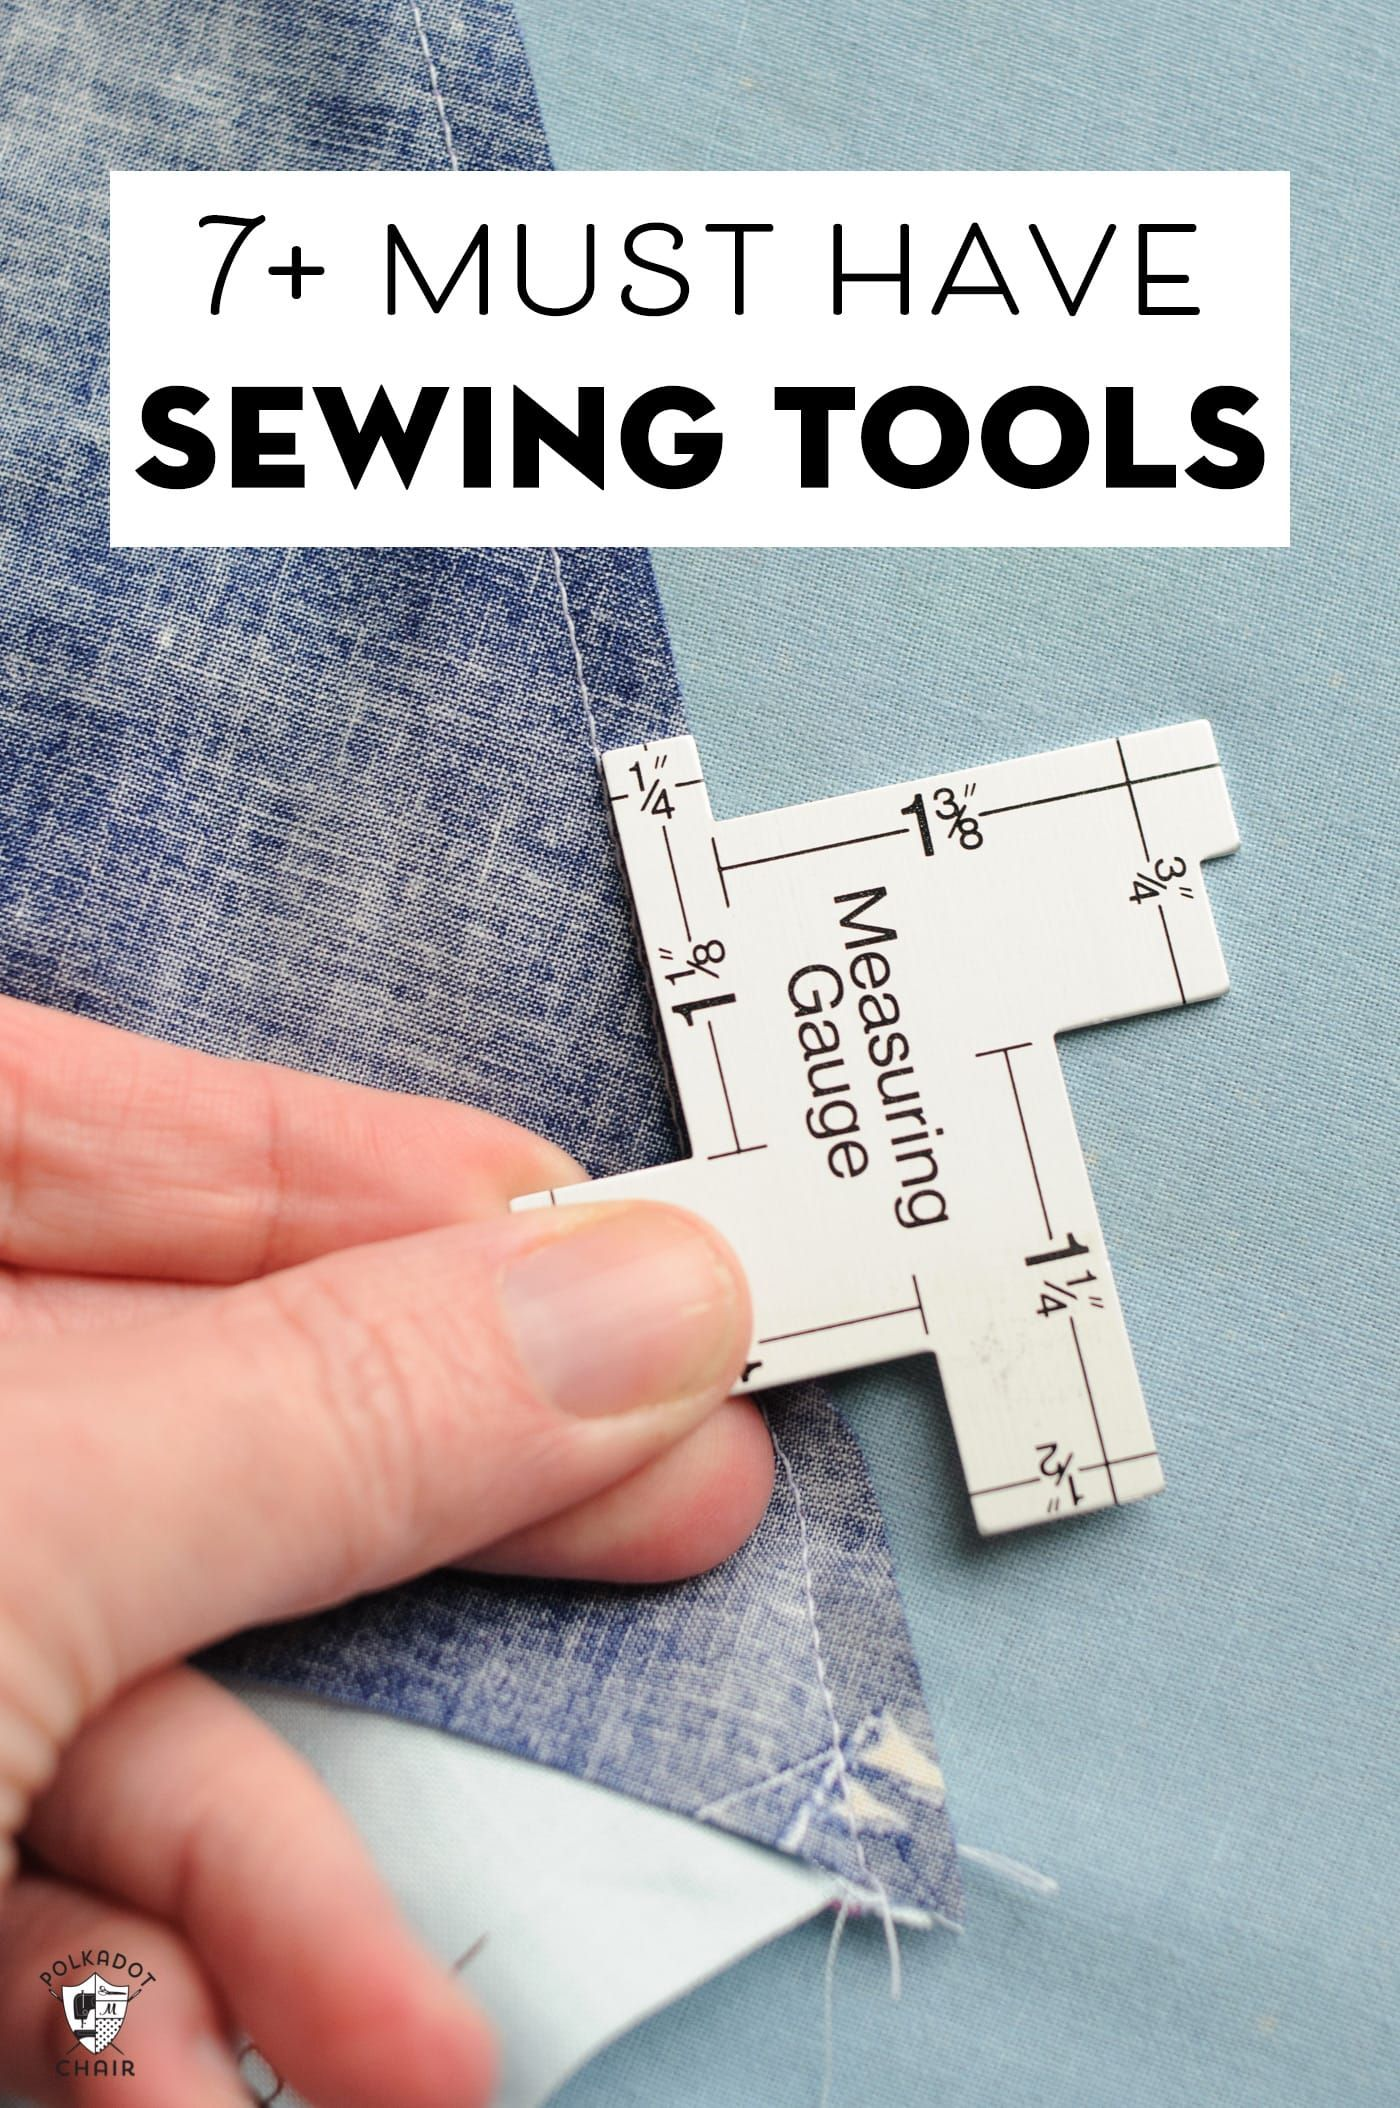 More than 7 Sewing Tools that you didnt know you needed and now you cant live without